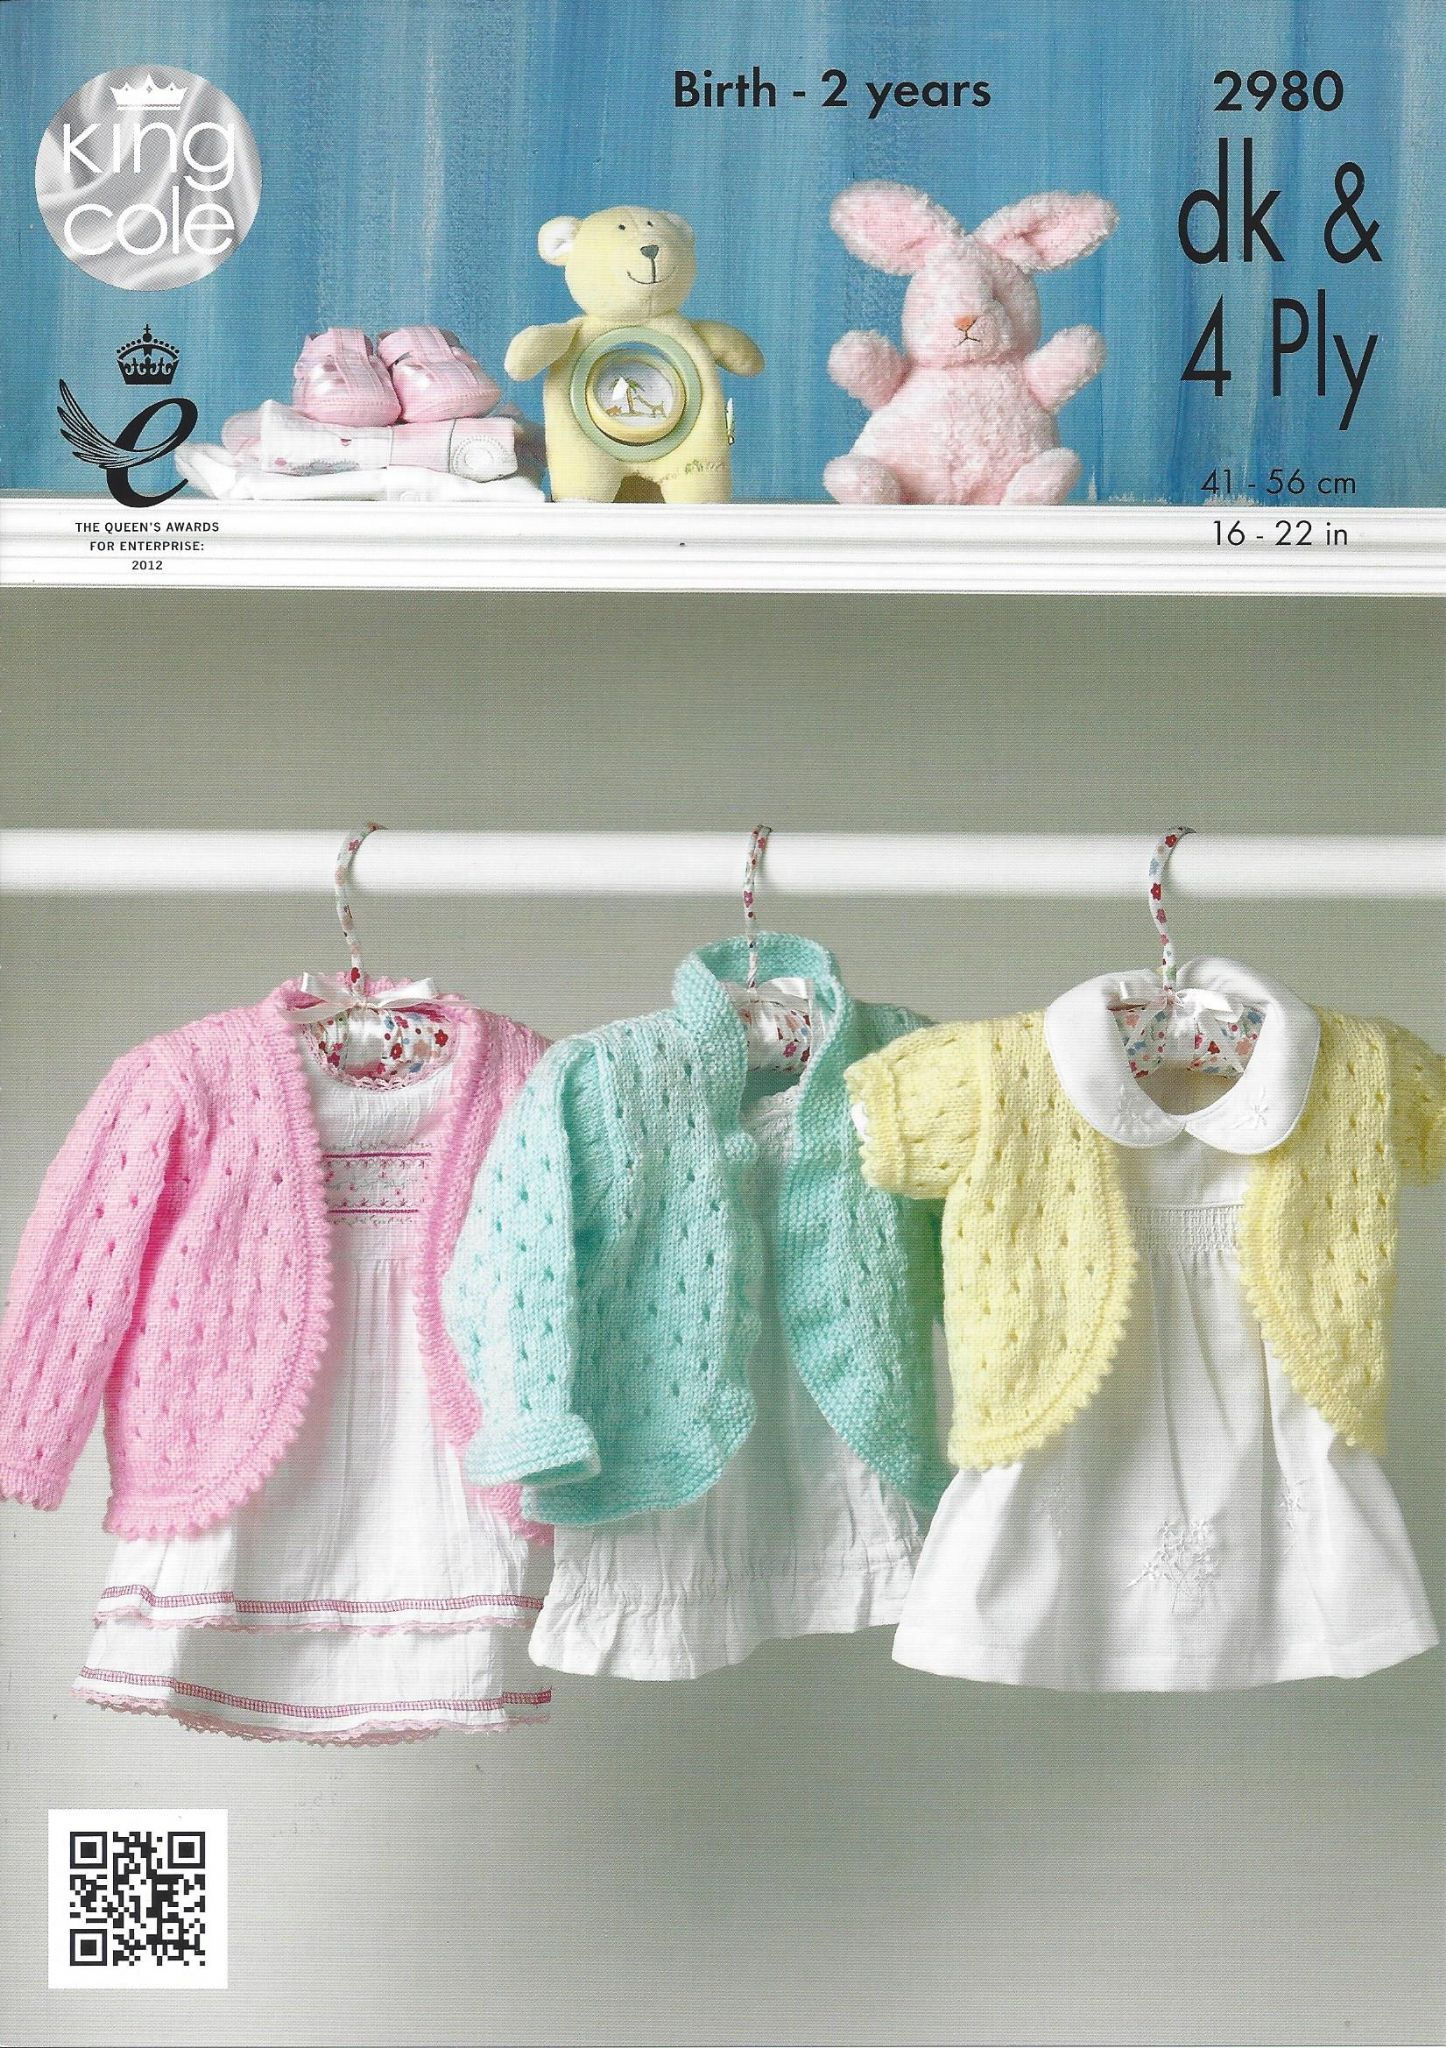 King Cole Baby DK & 4ply Knitting Pattern - 2980 Cardigans